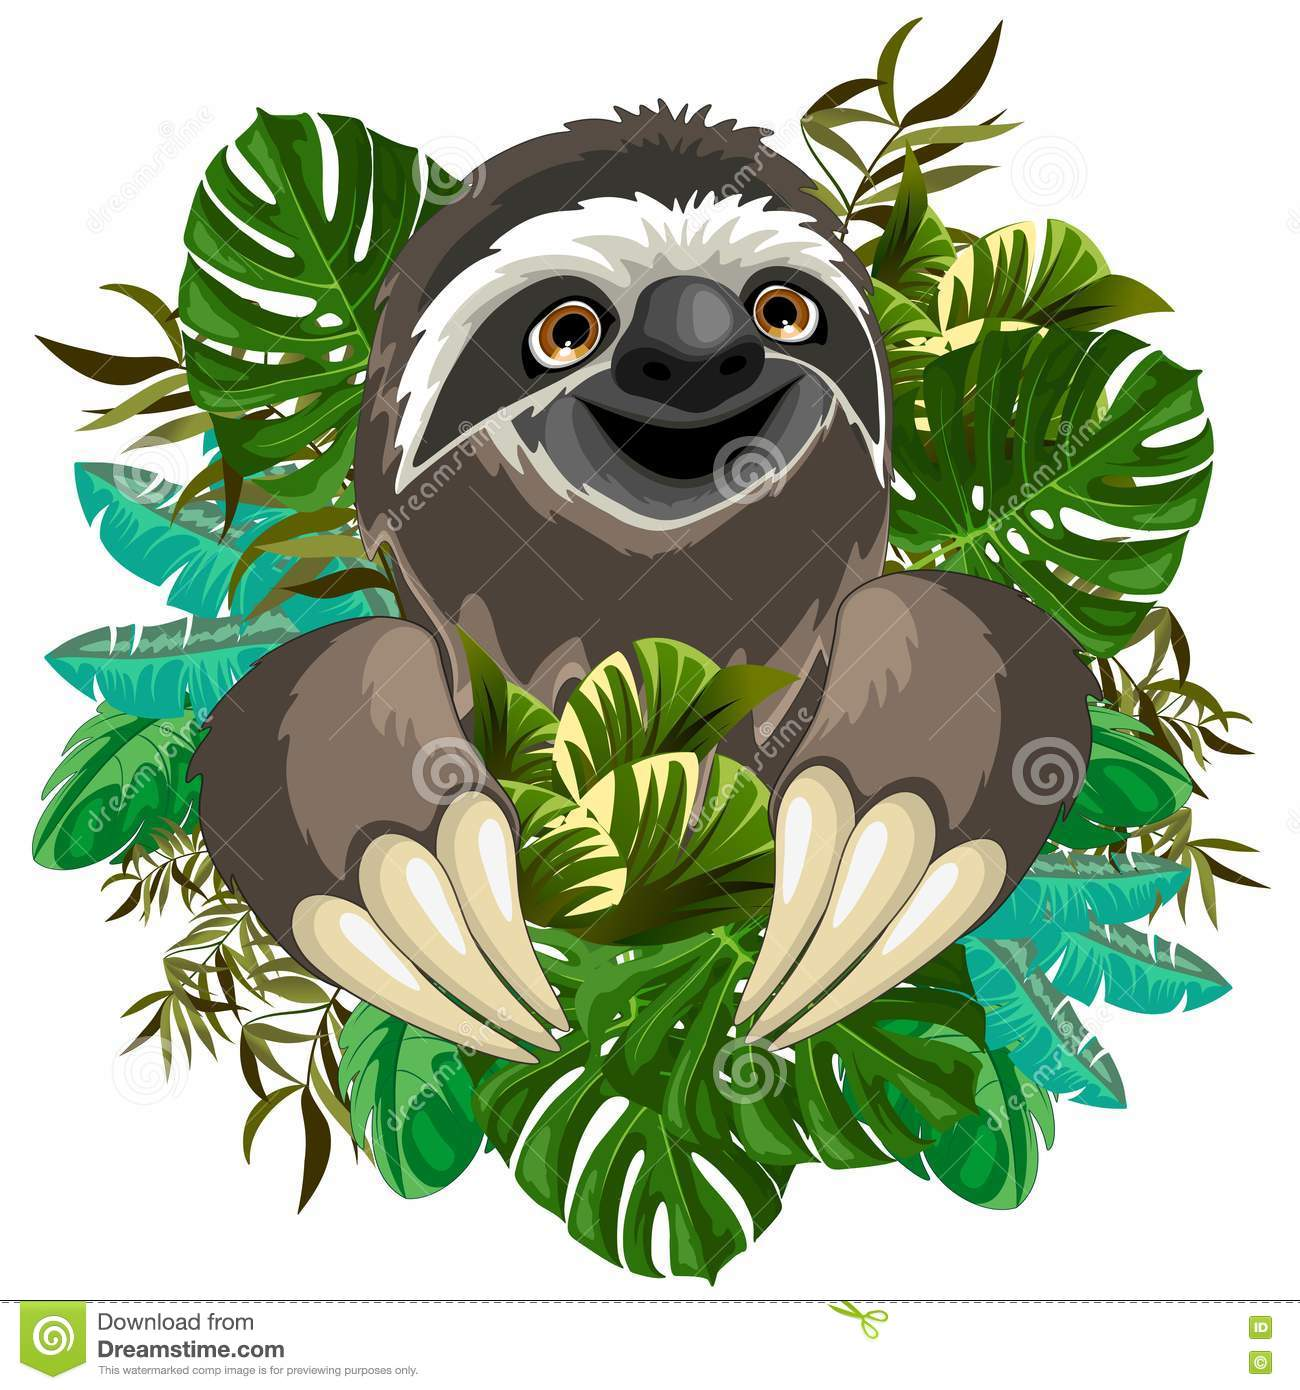 Sloth Cute Cartoon on Tropical Nature